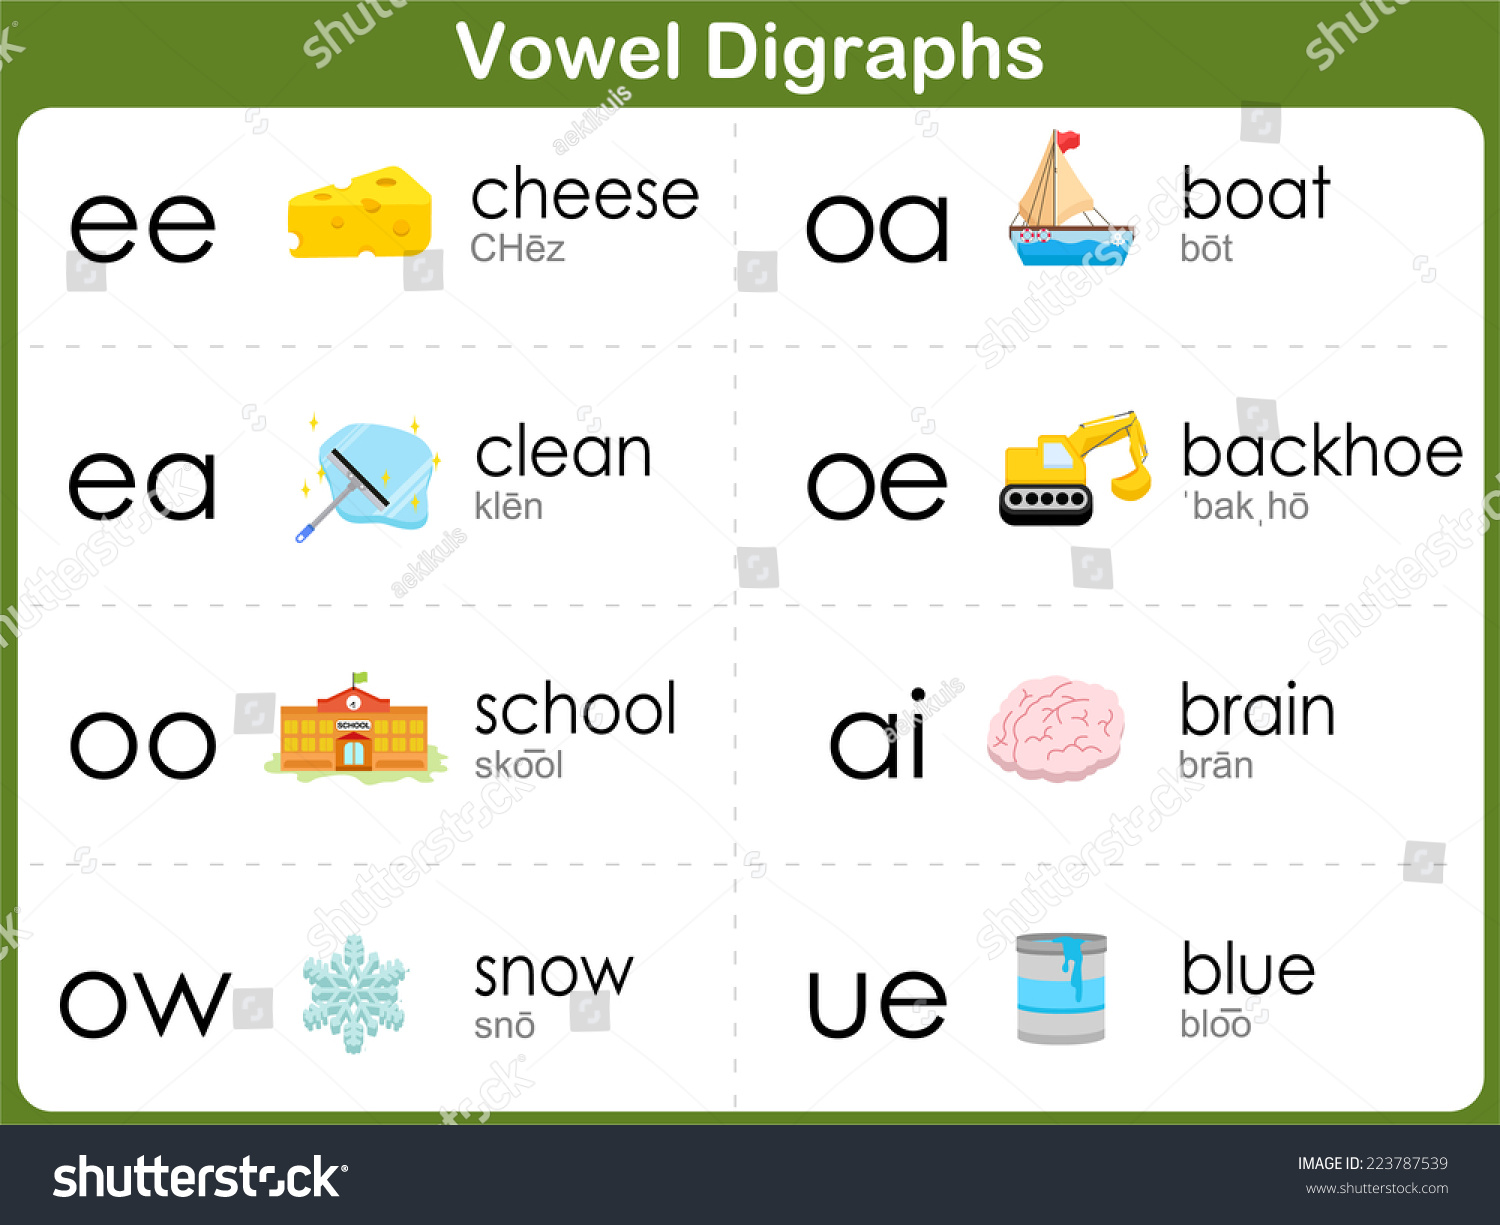 Worksheets Vowel Digraph Worksheets vowel digraphs worksheets long ow worksheet for kids stock vector illustration